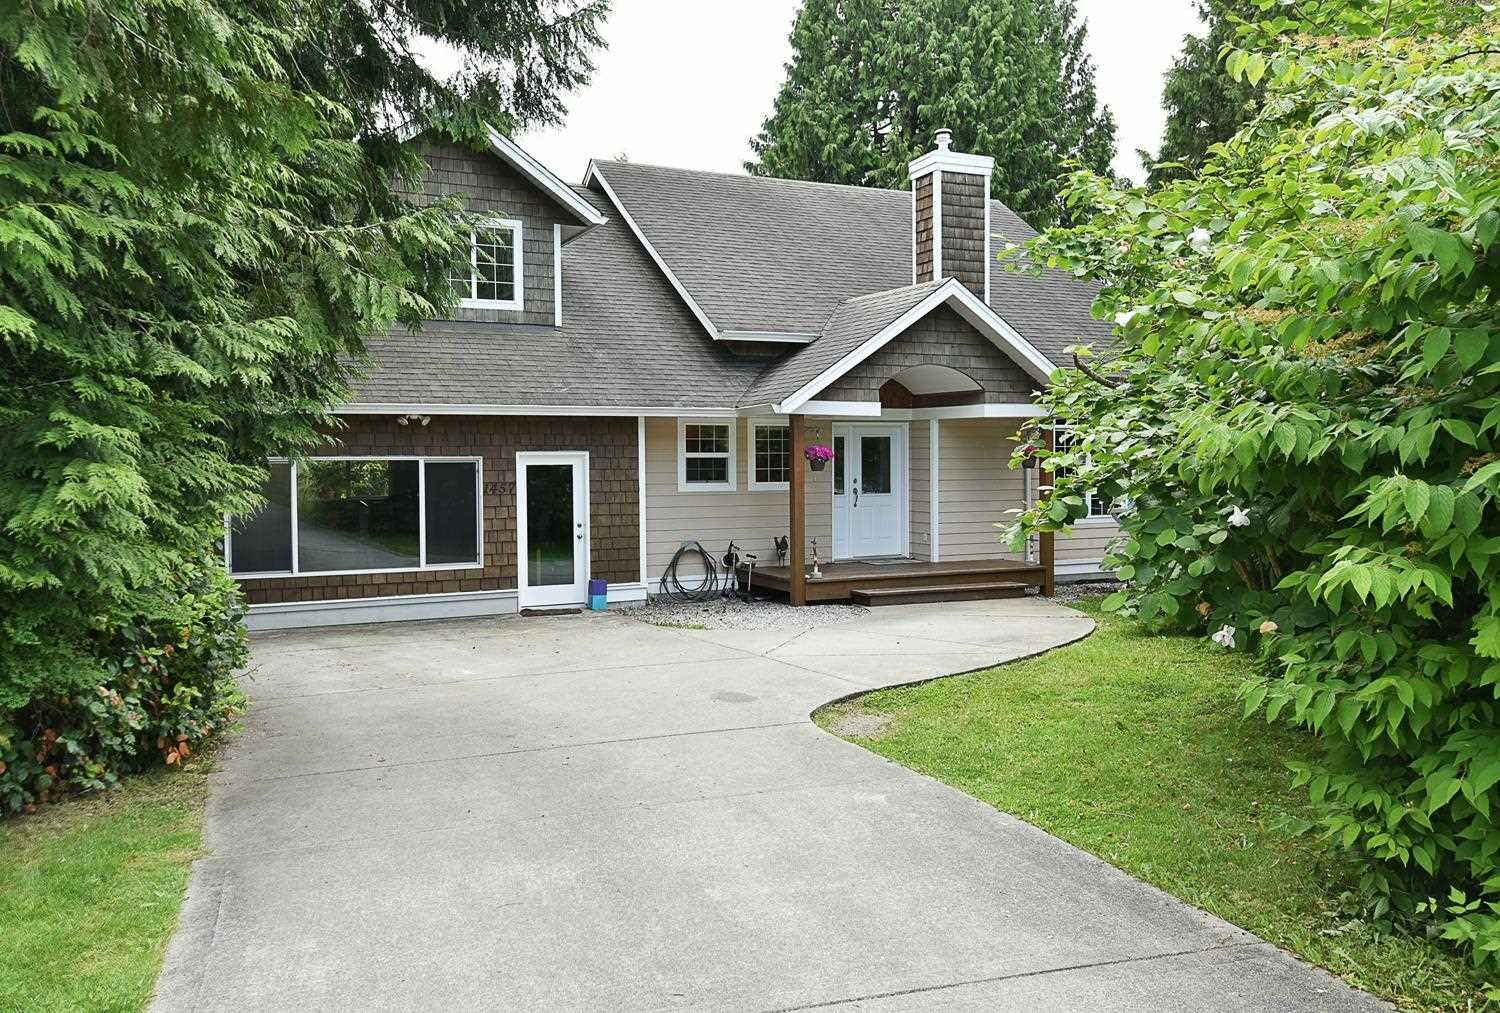 Main Photo: 1457 VERNON Drive in Gibsons: Gibsons & Area House for sale (Sunshine Coast)  : MLS®# R2593990